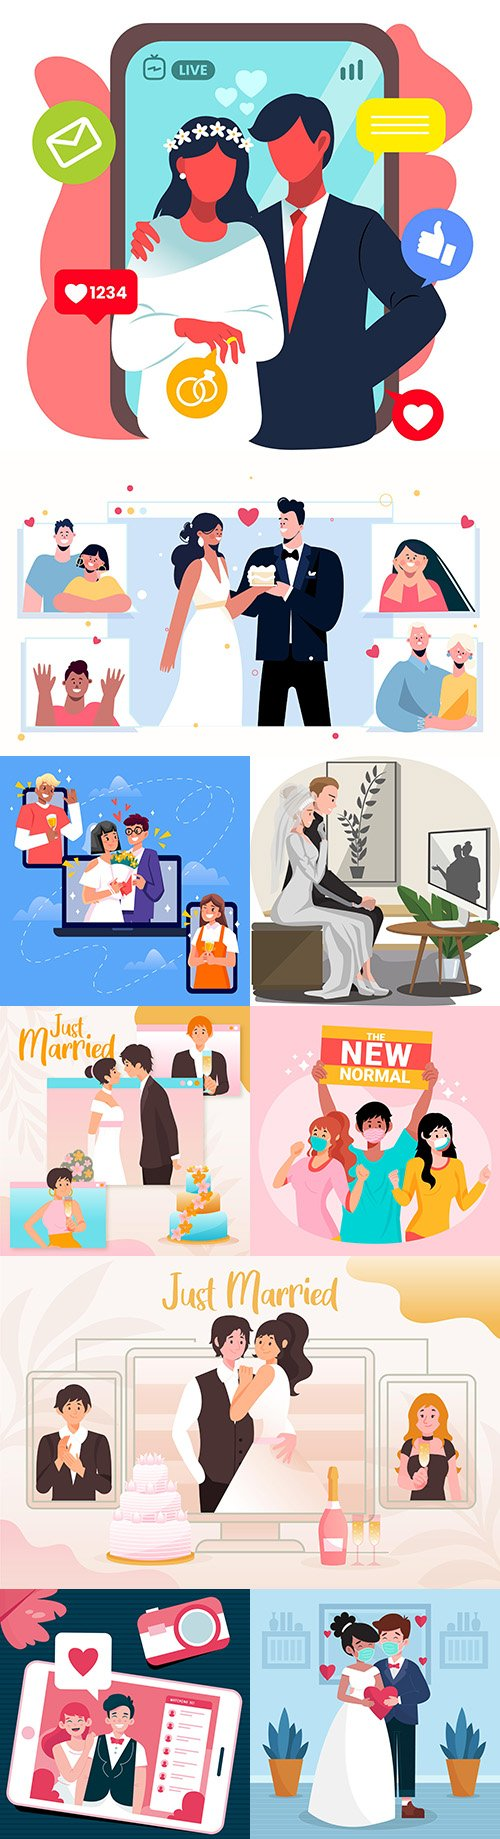 Wedding festive ceremony flat design illustration